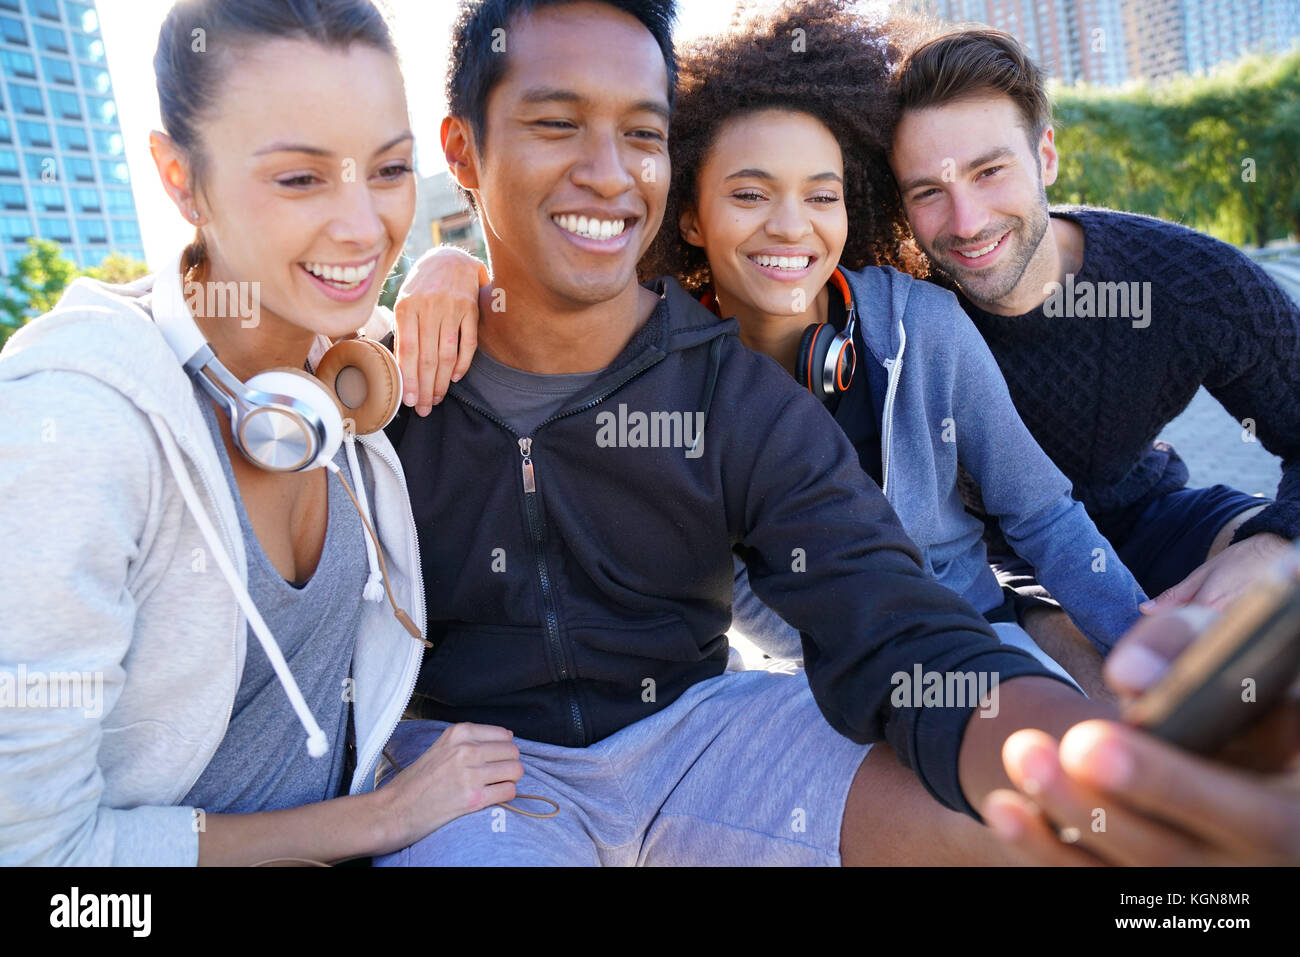 Group of friends in casual outfit taking selfie picture with smartphone - Stock Image